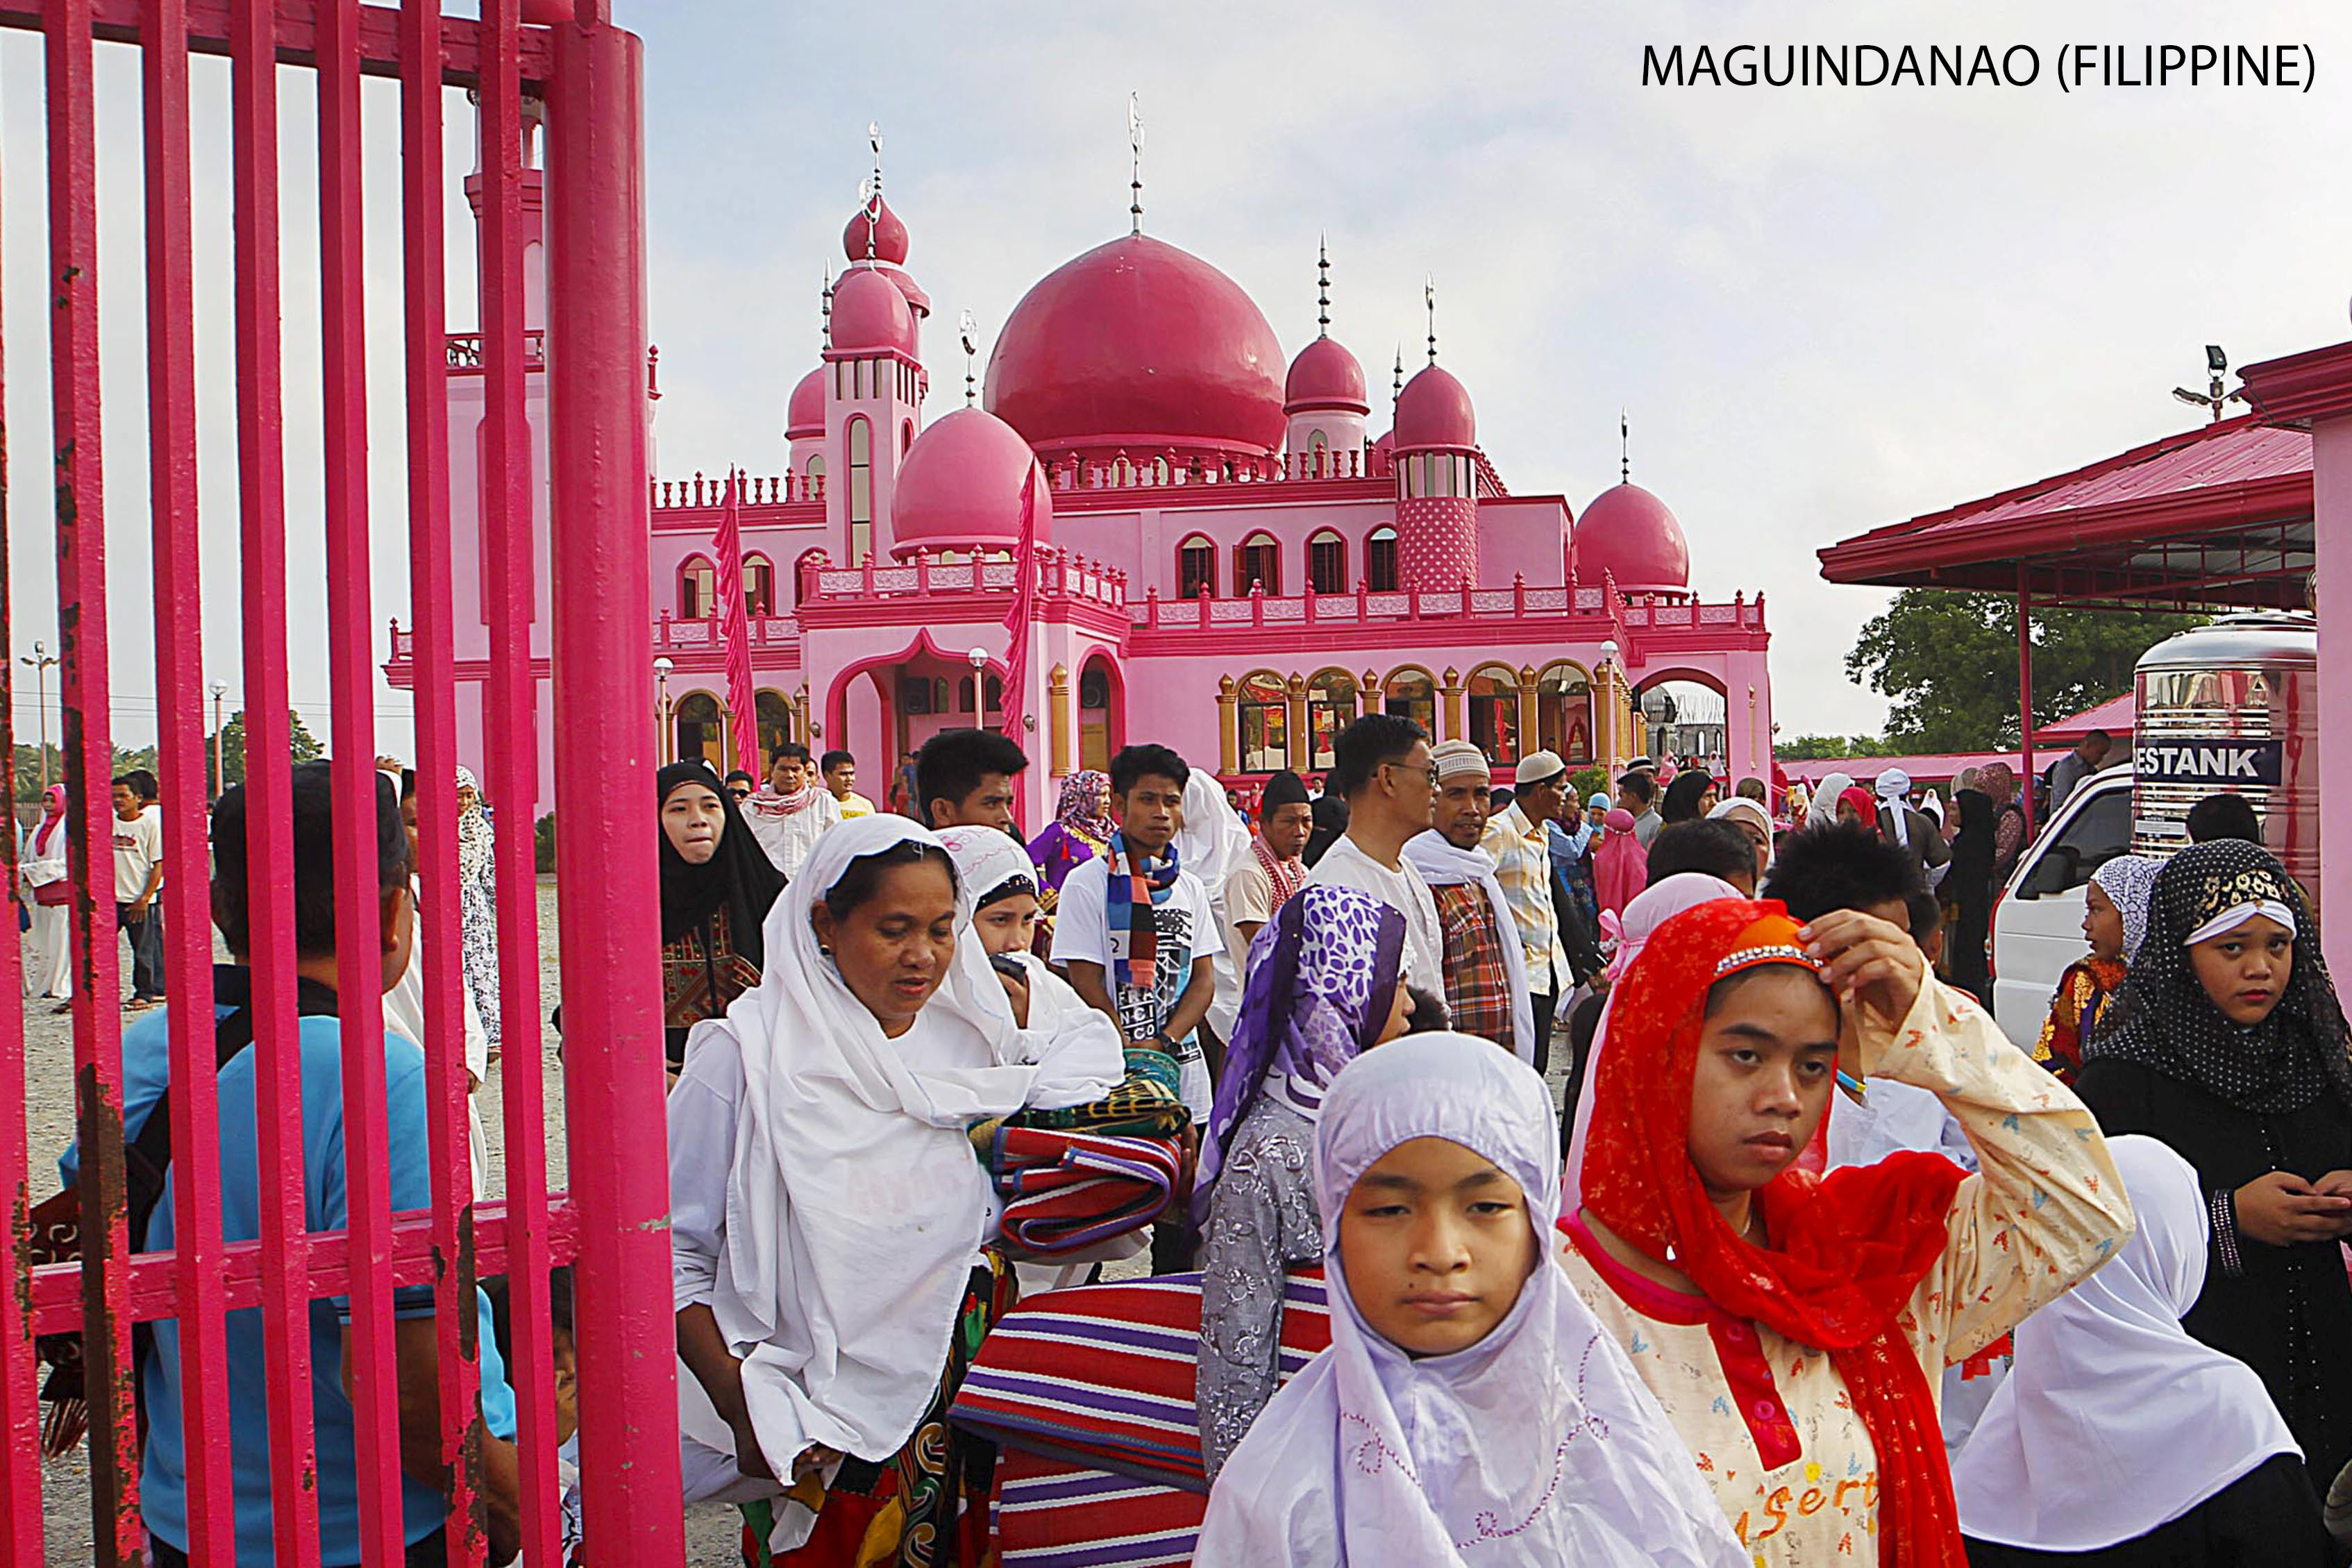 Filipino Muslims leave after attending the morning prayers of Eid al-Fitr holiday, marking the end of the holy month of Ramadan, at the Pink Mosque in Datu Saudi Ampatuan town, Maguindanao province in southern Philippines July 17, 2015. REUTERS/Marconi Navales